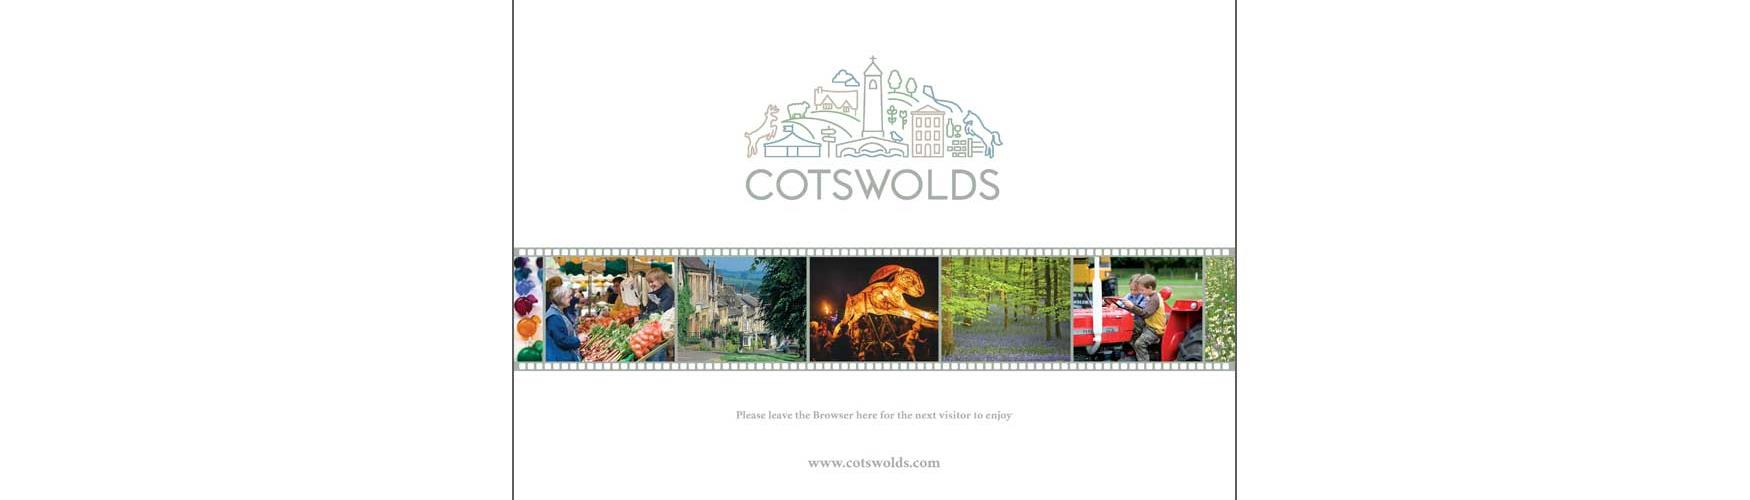 Advertise in the Cotswolds Browser